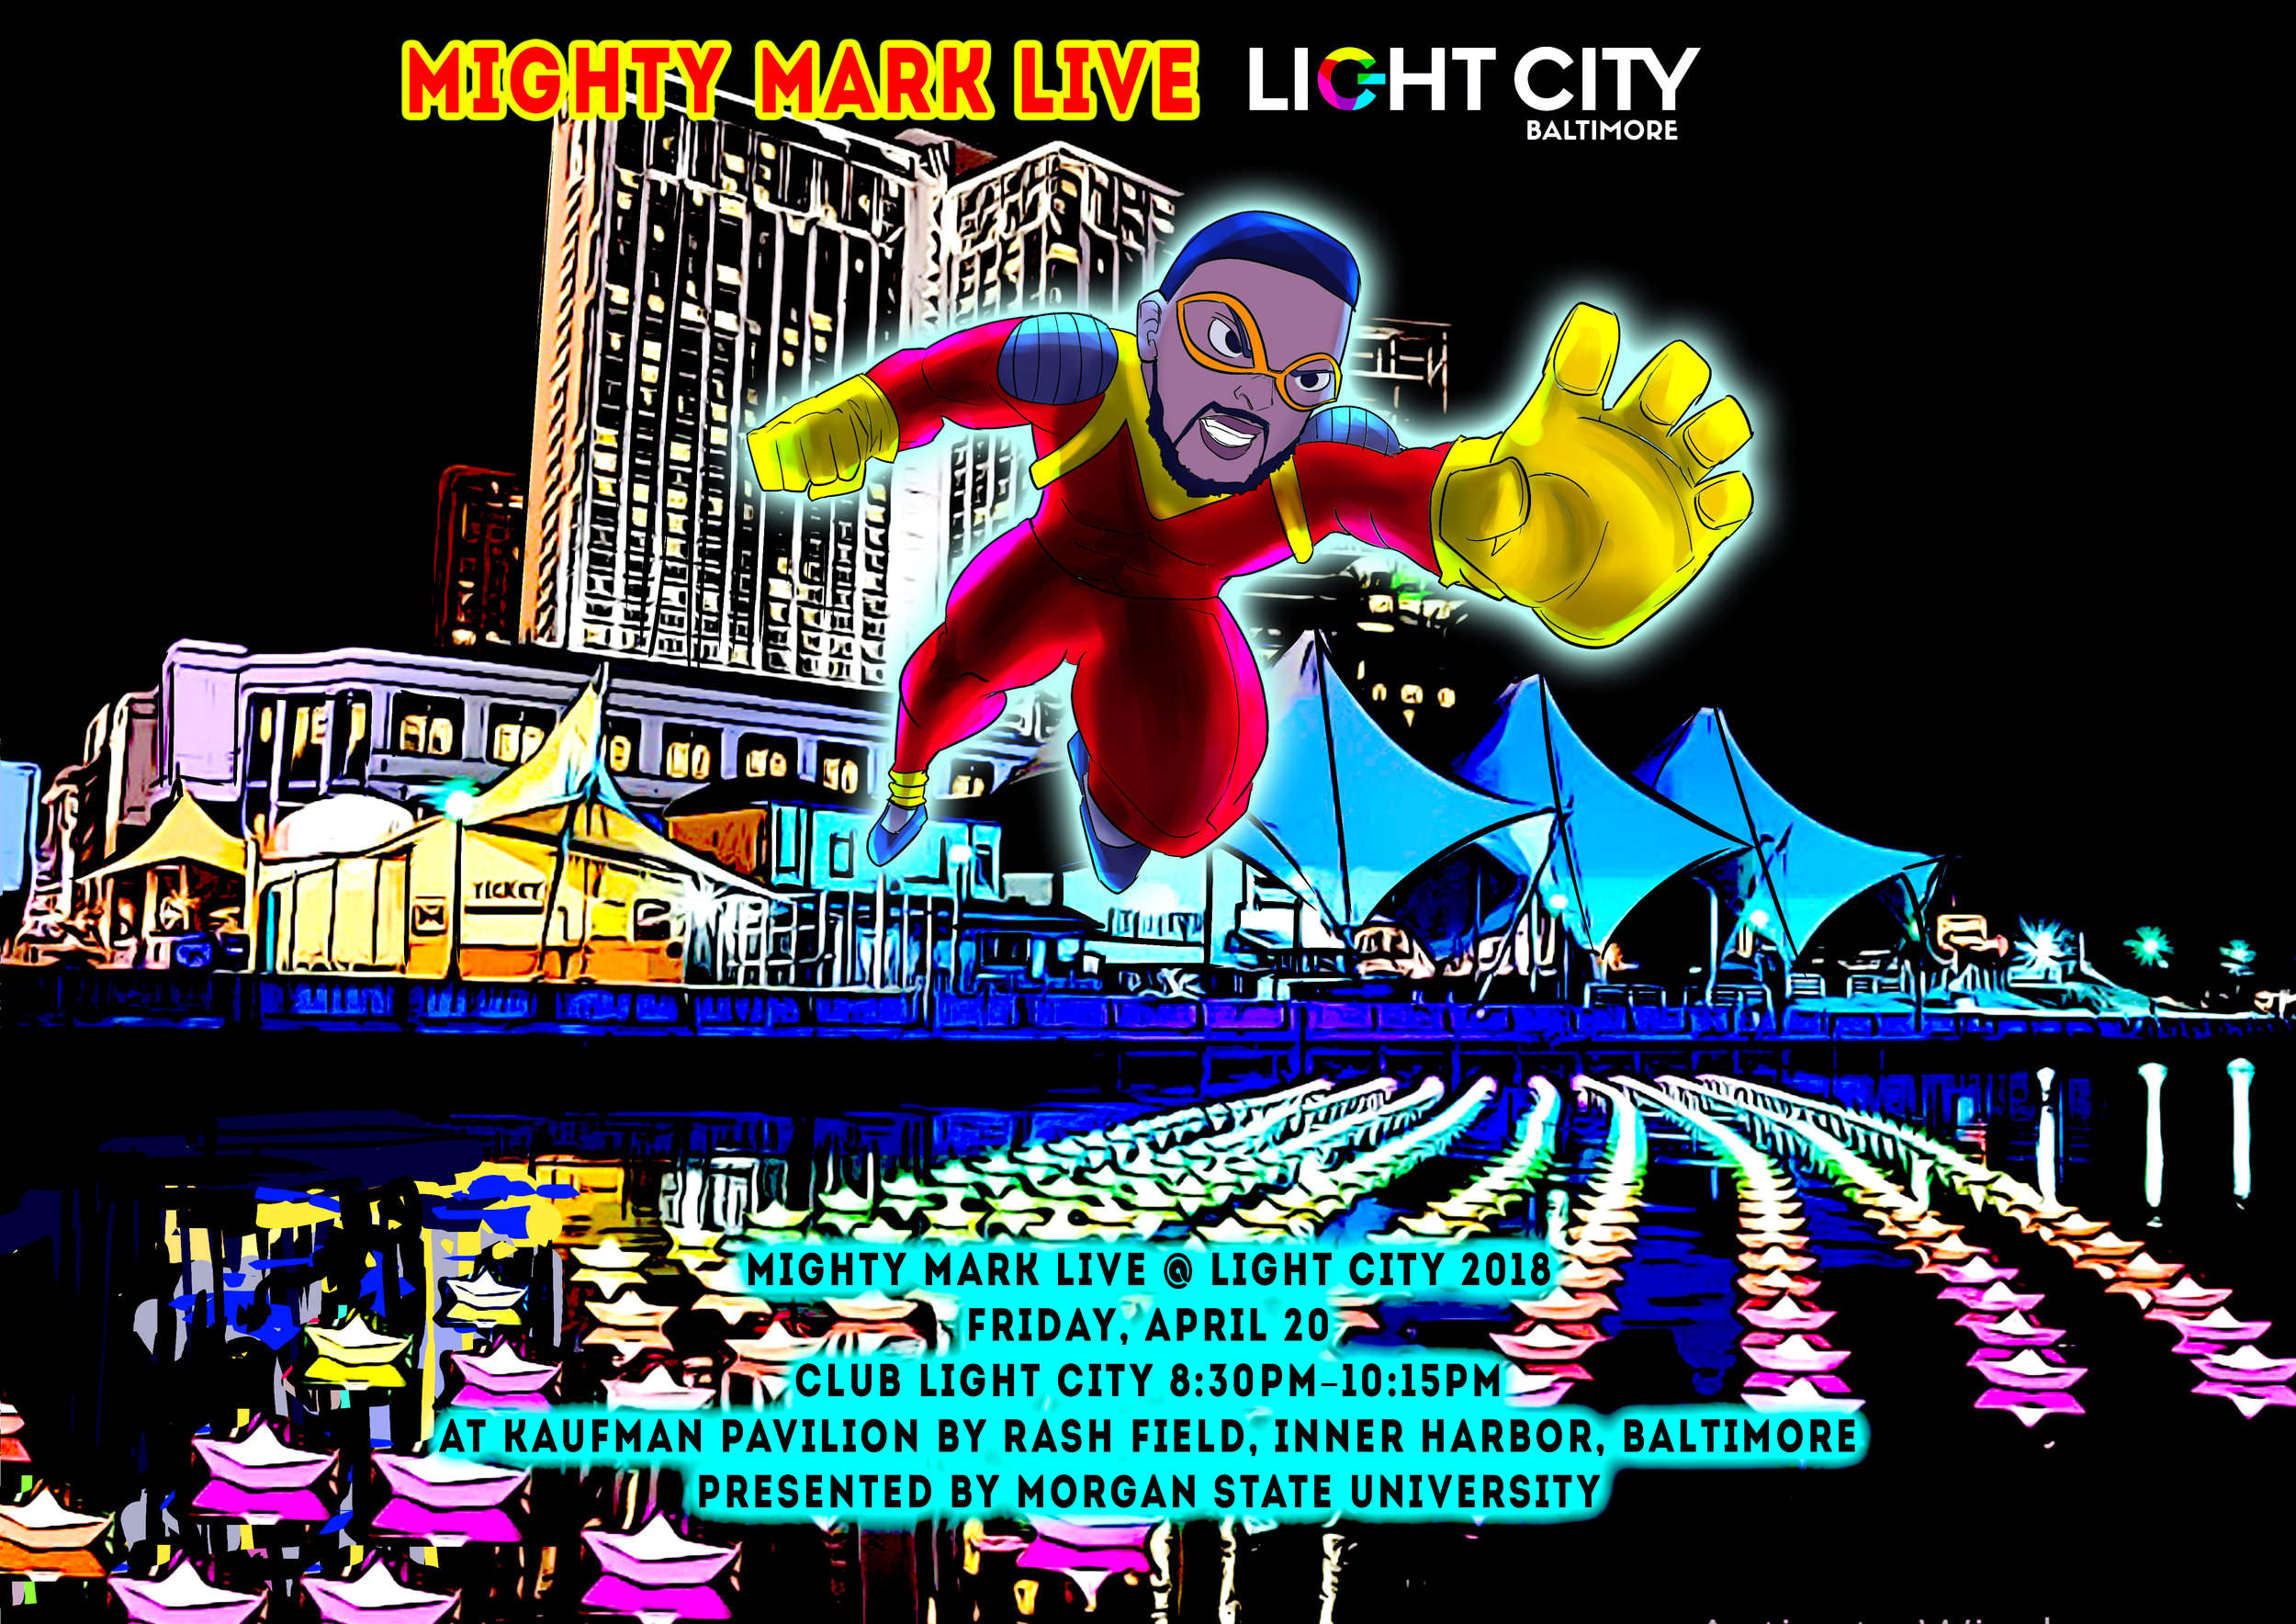 Mighty_Mark_Light City.jpg